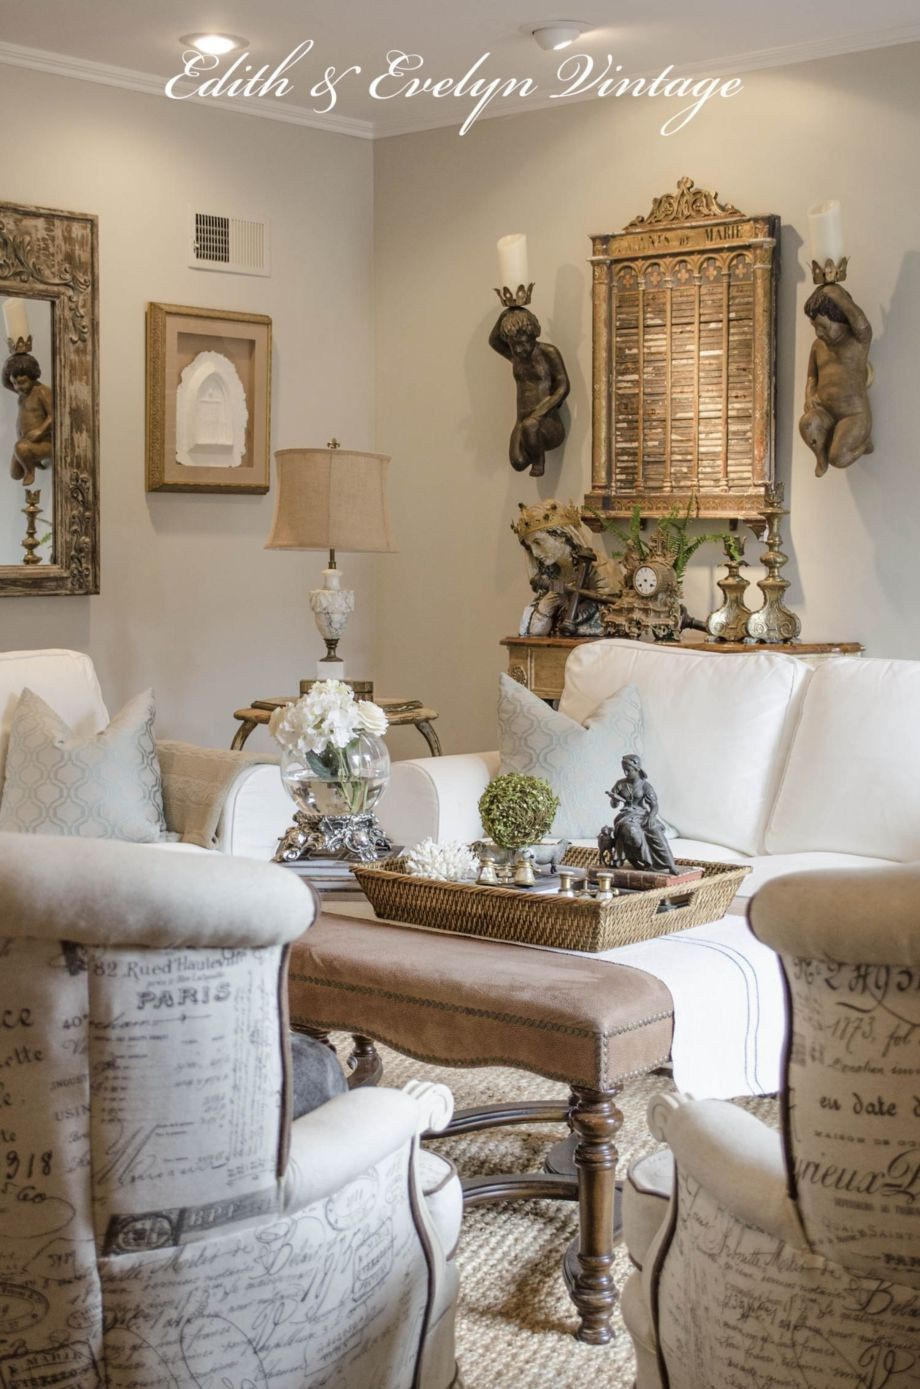 Inspiring Diy French Country Decor Ideas 39 Country House Decor French Country Decorating Living Room French Country Design